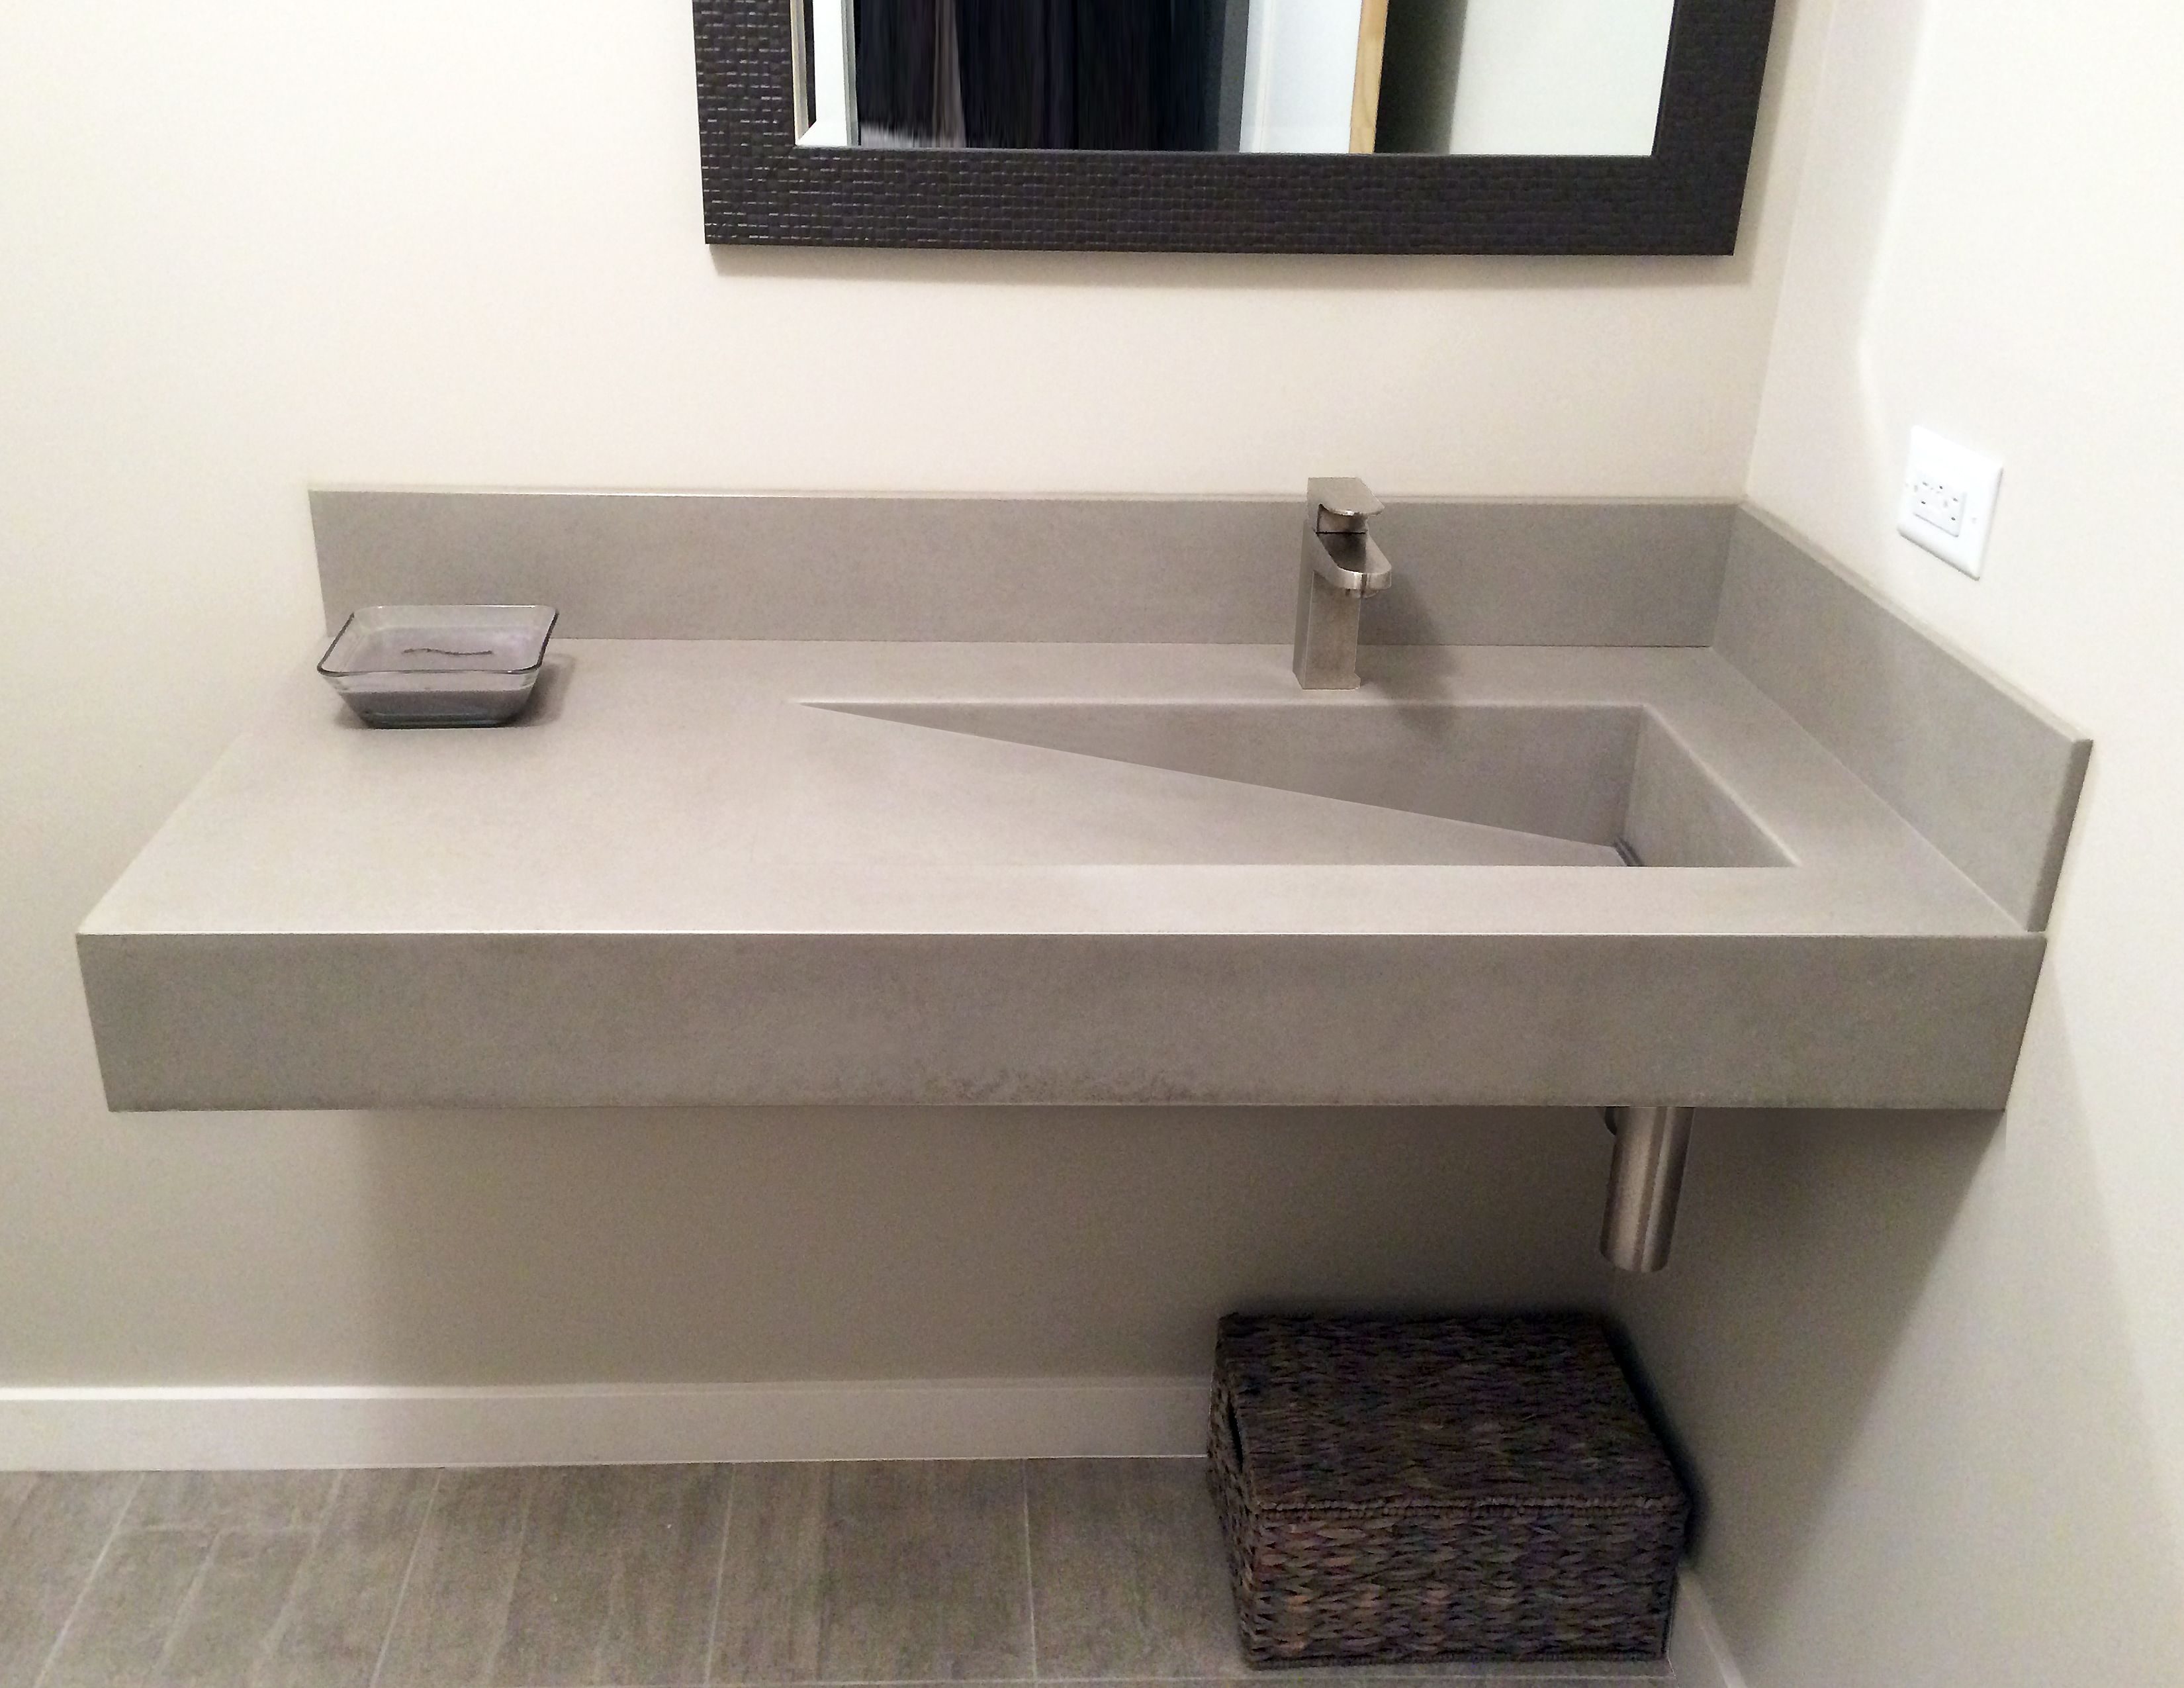 wall hung concrete bathroom sink with a